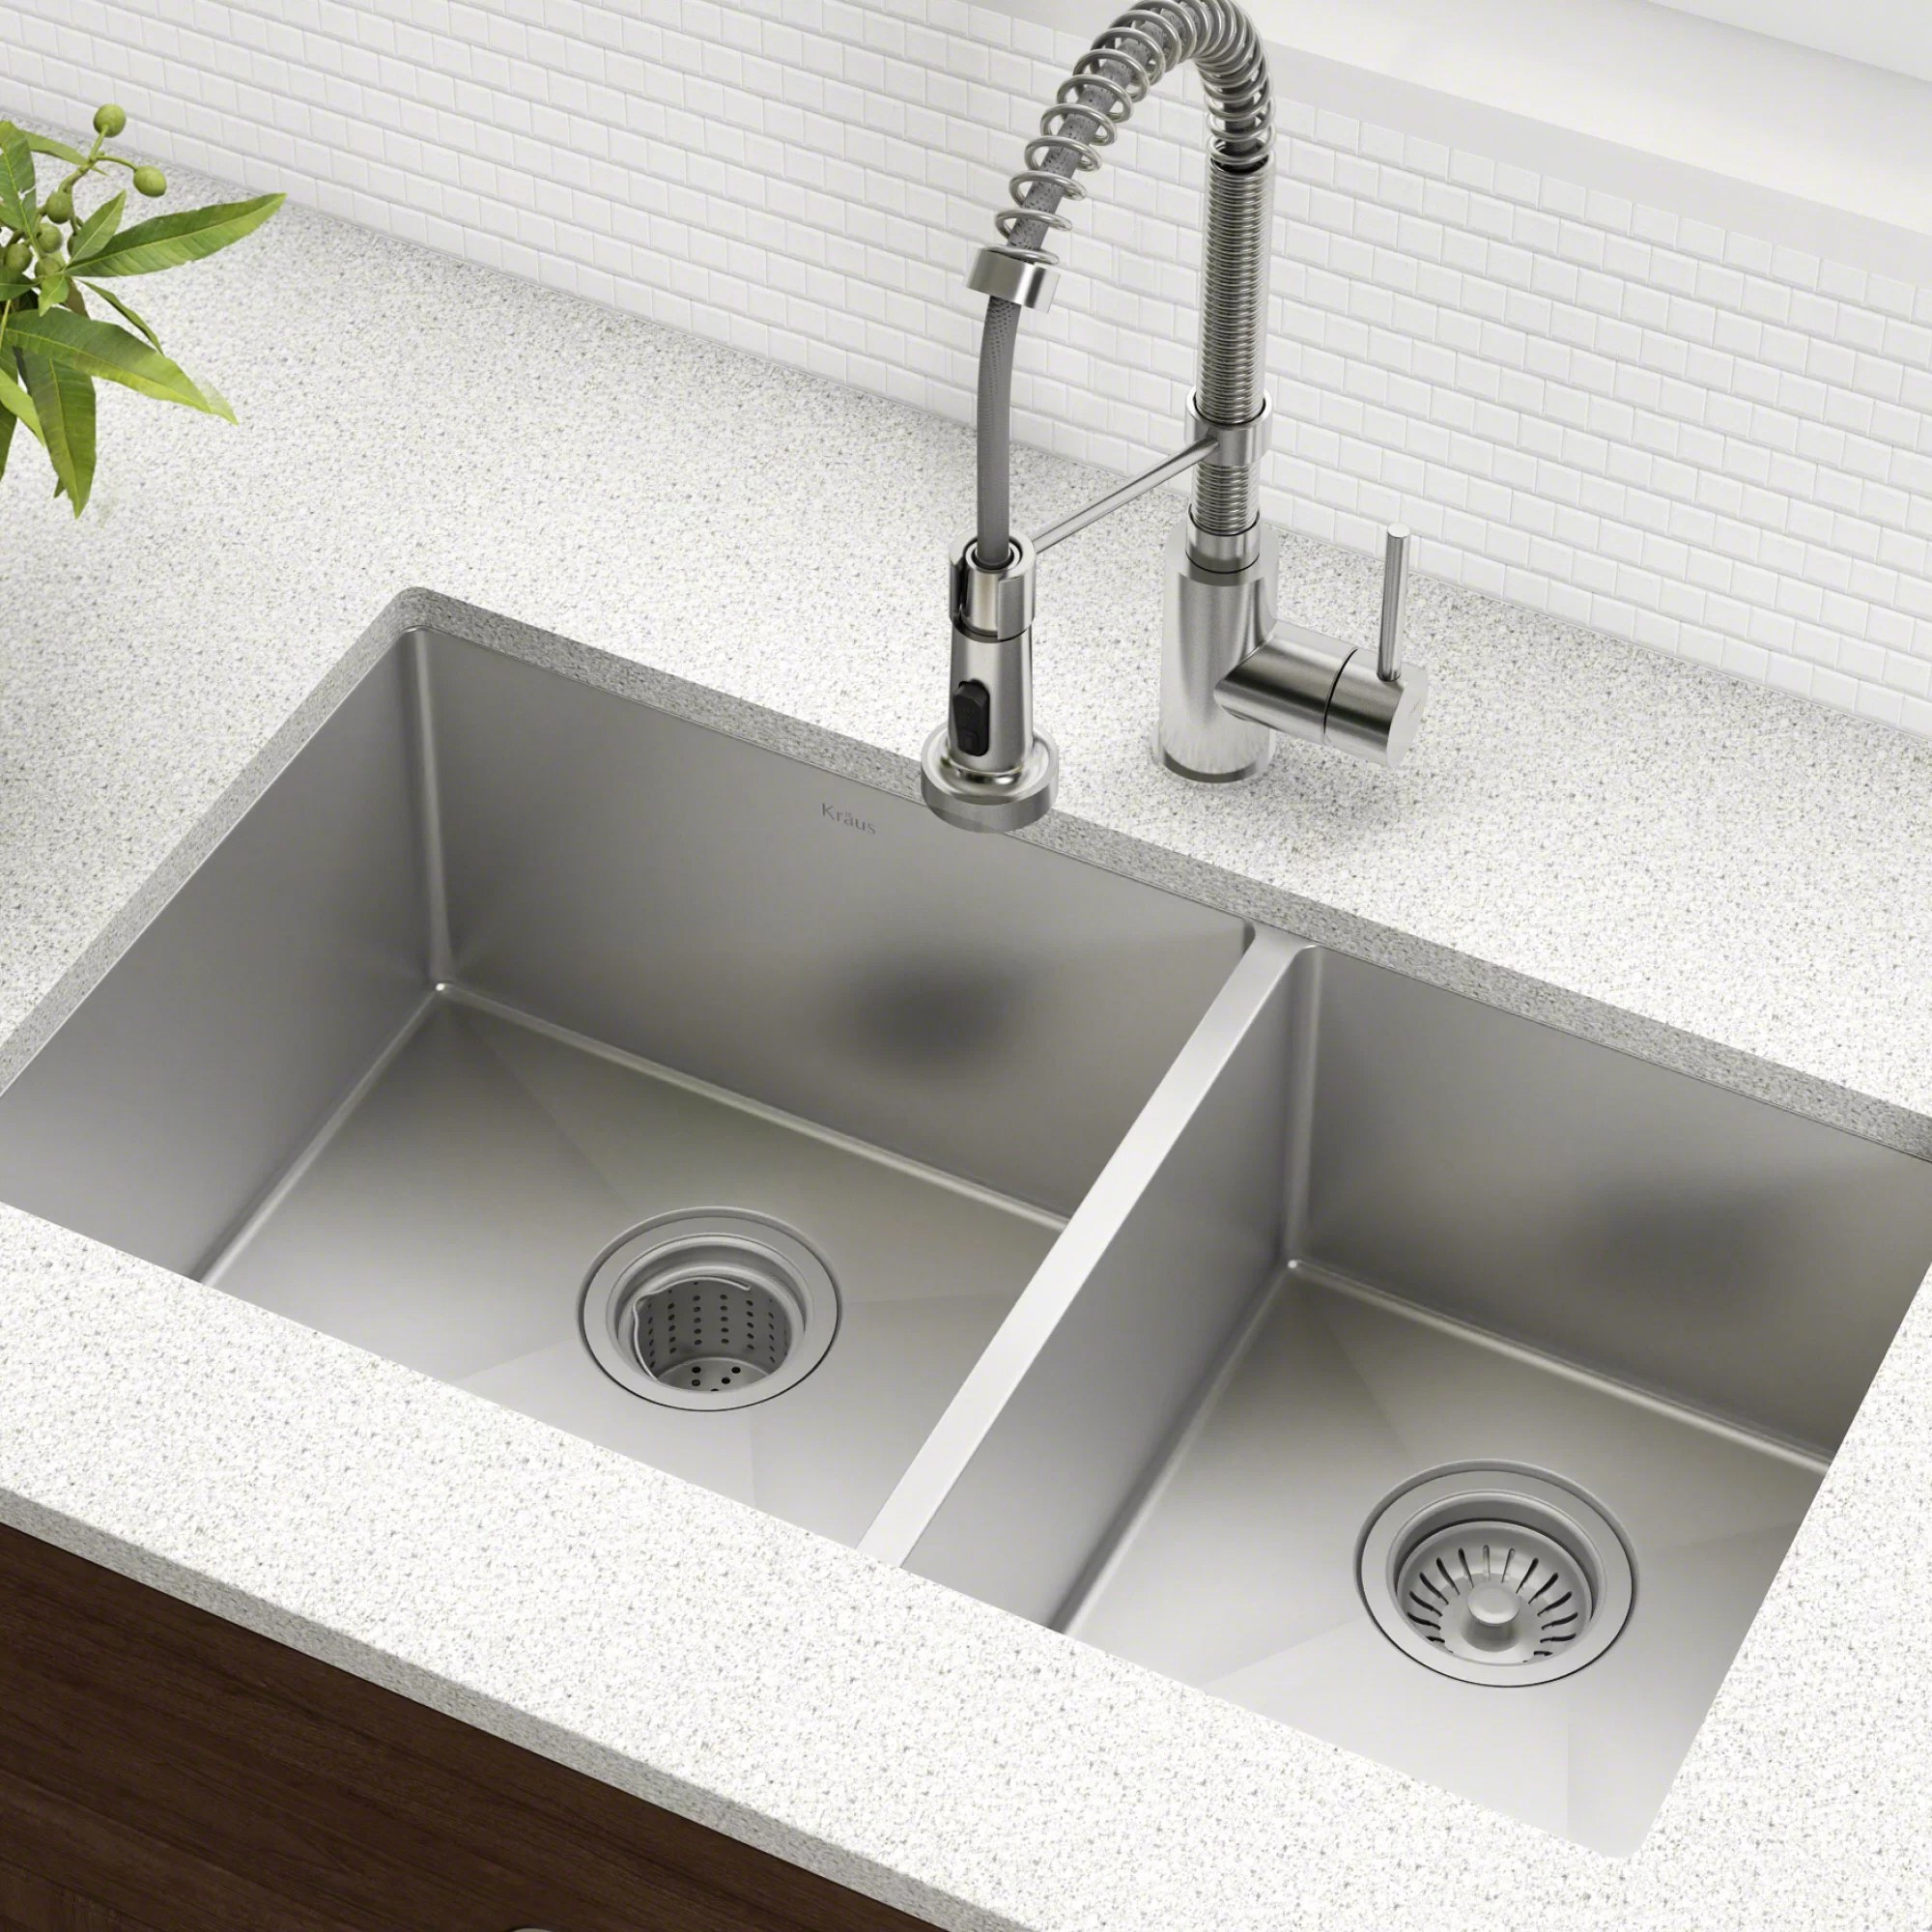 high end kitchen sinks cabinets designs kraus 33 l x 19 w double basin undermount sink with drain assembly reviews wayfair ca